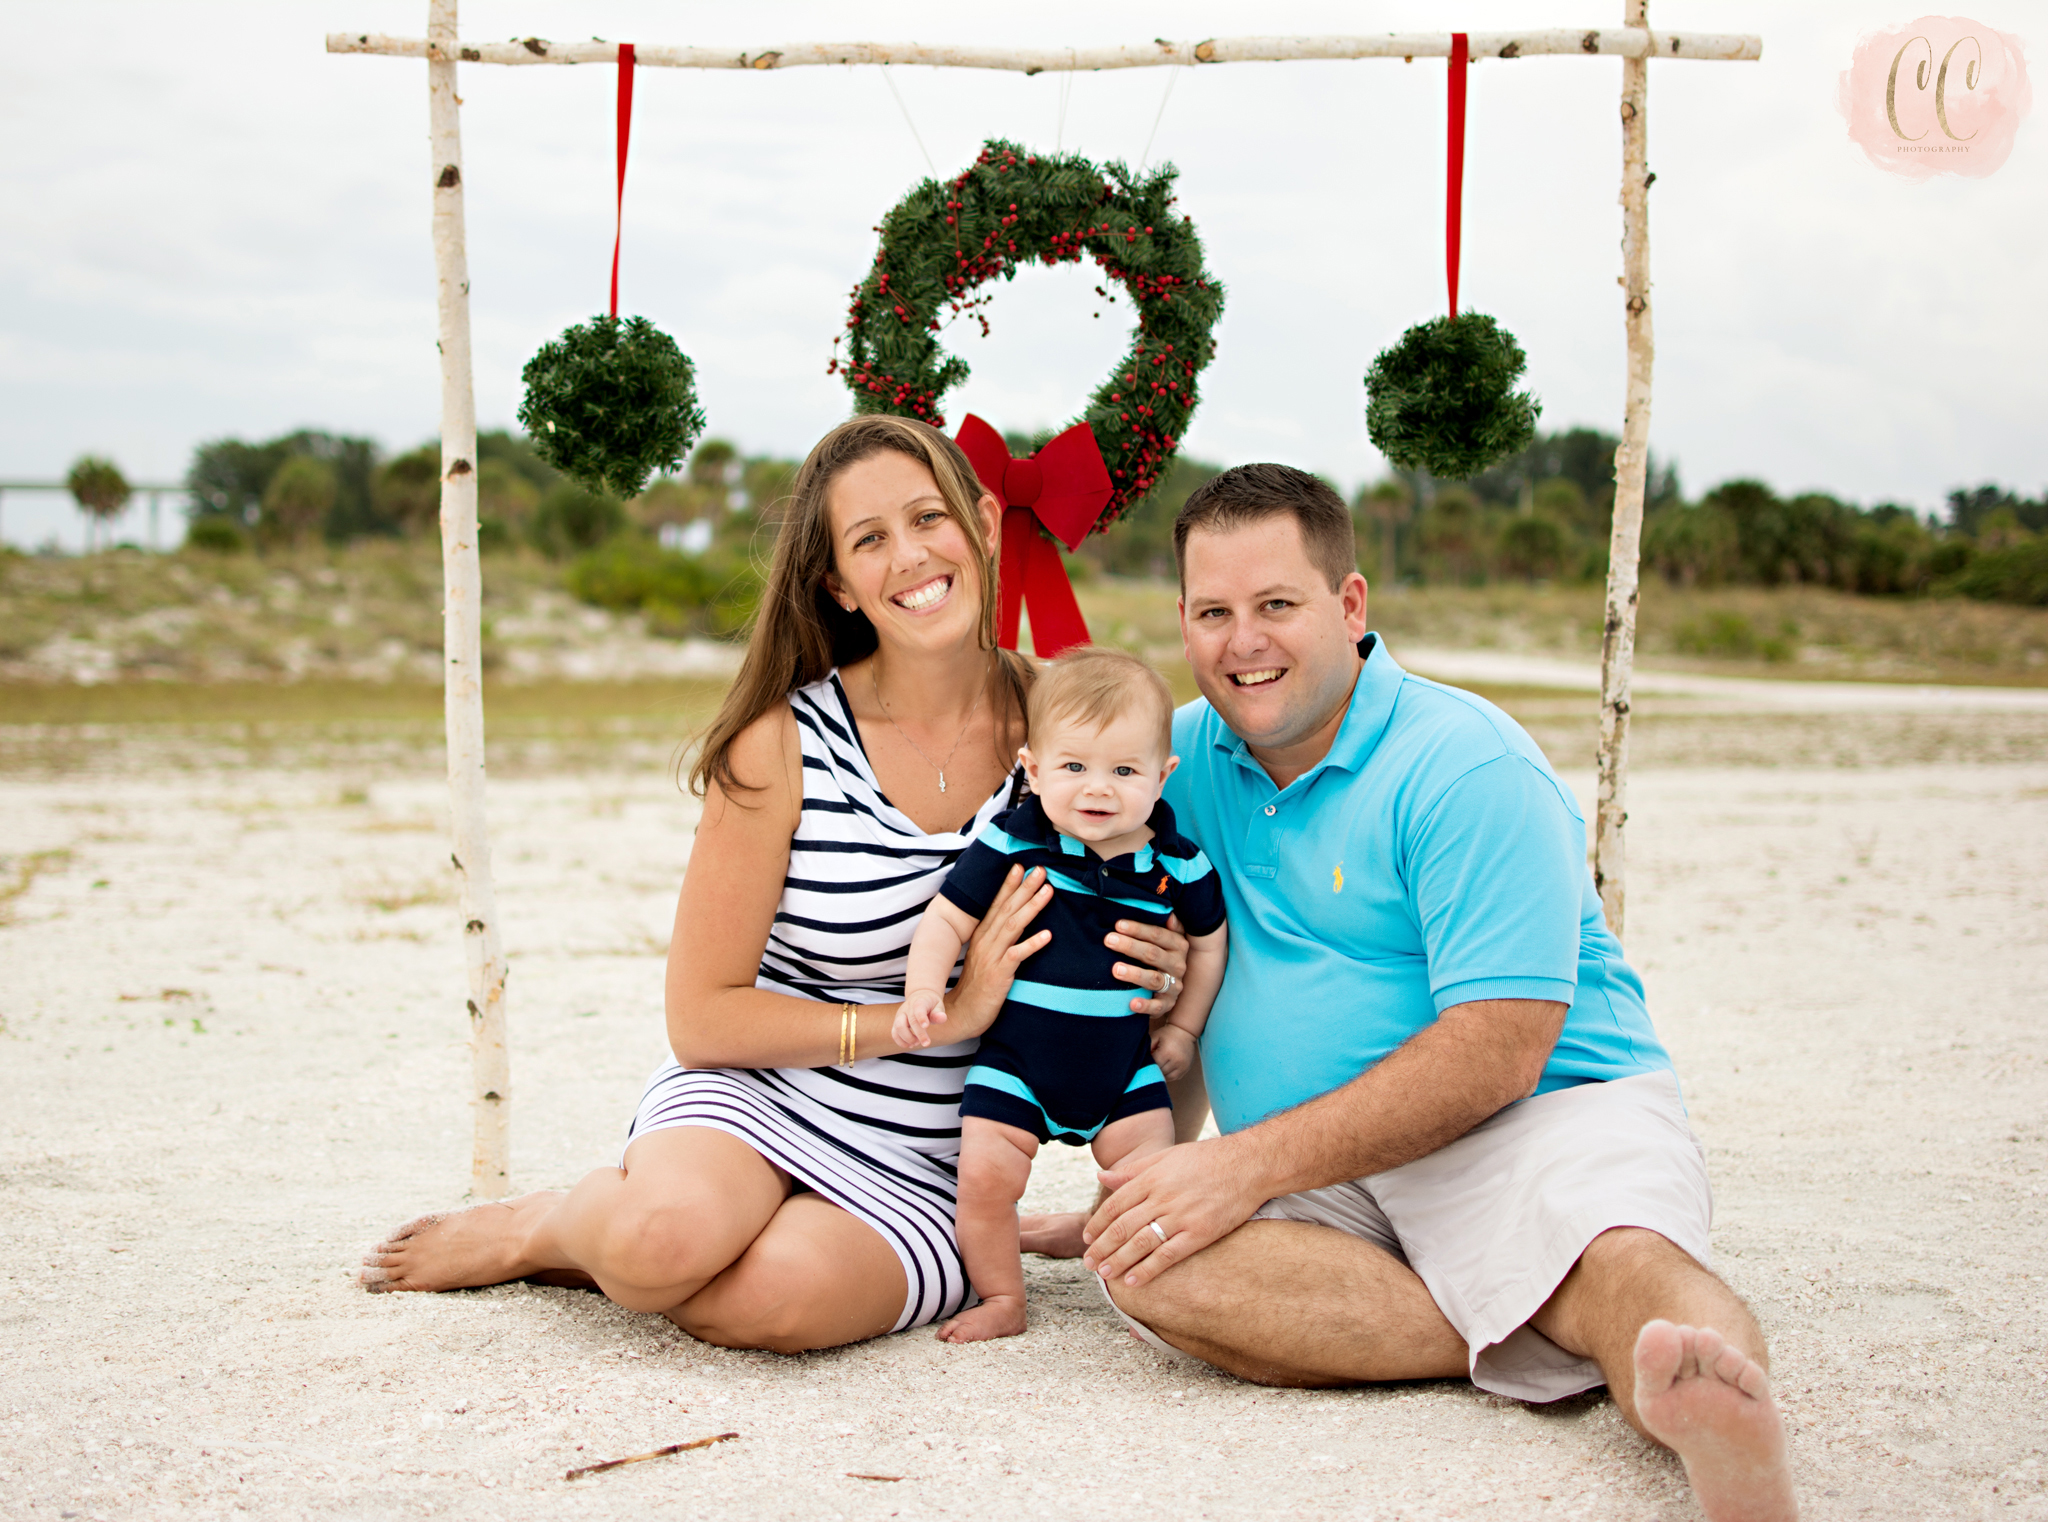 Mini session photography at Sand Key Beach in Clearwater, Florida taken by family photographer Carlie Chew Photography